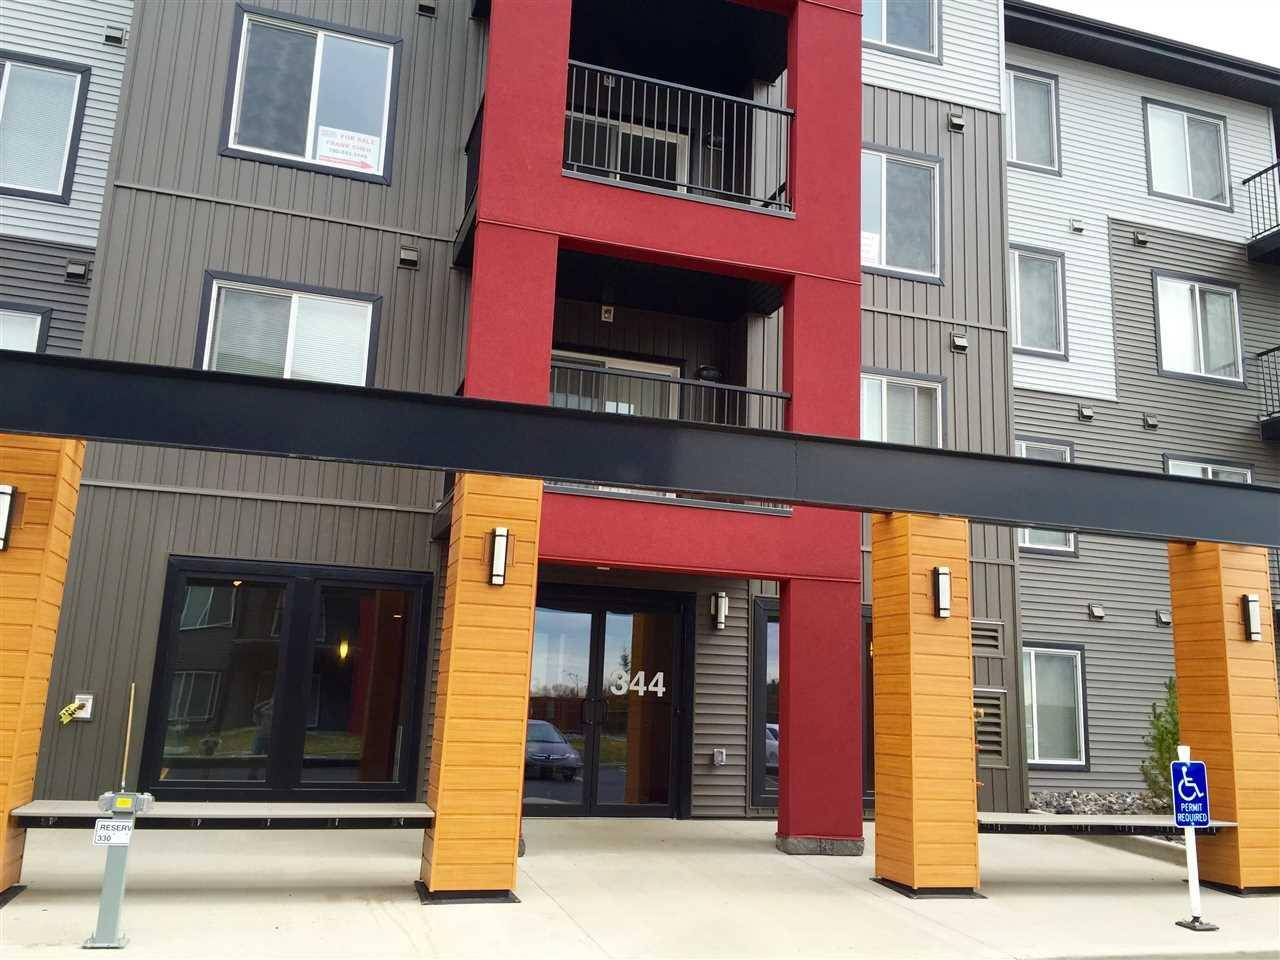 Condo for sale at 344 Windermere Rd Nw Unit 427 Edmonton Alberta - MLS: E4172981